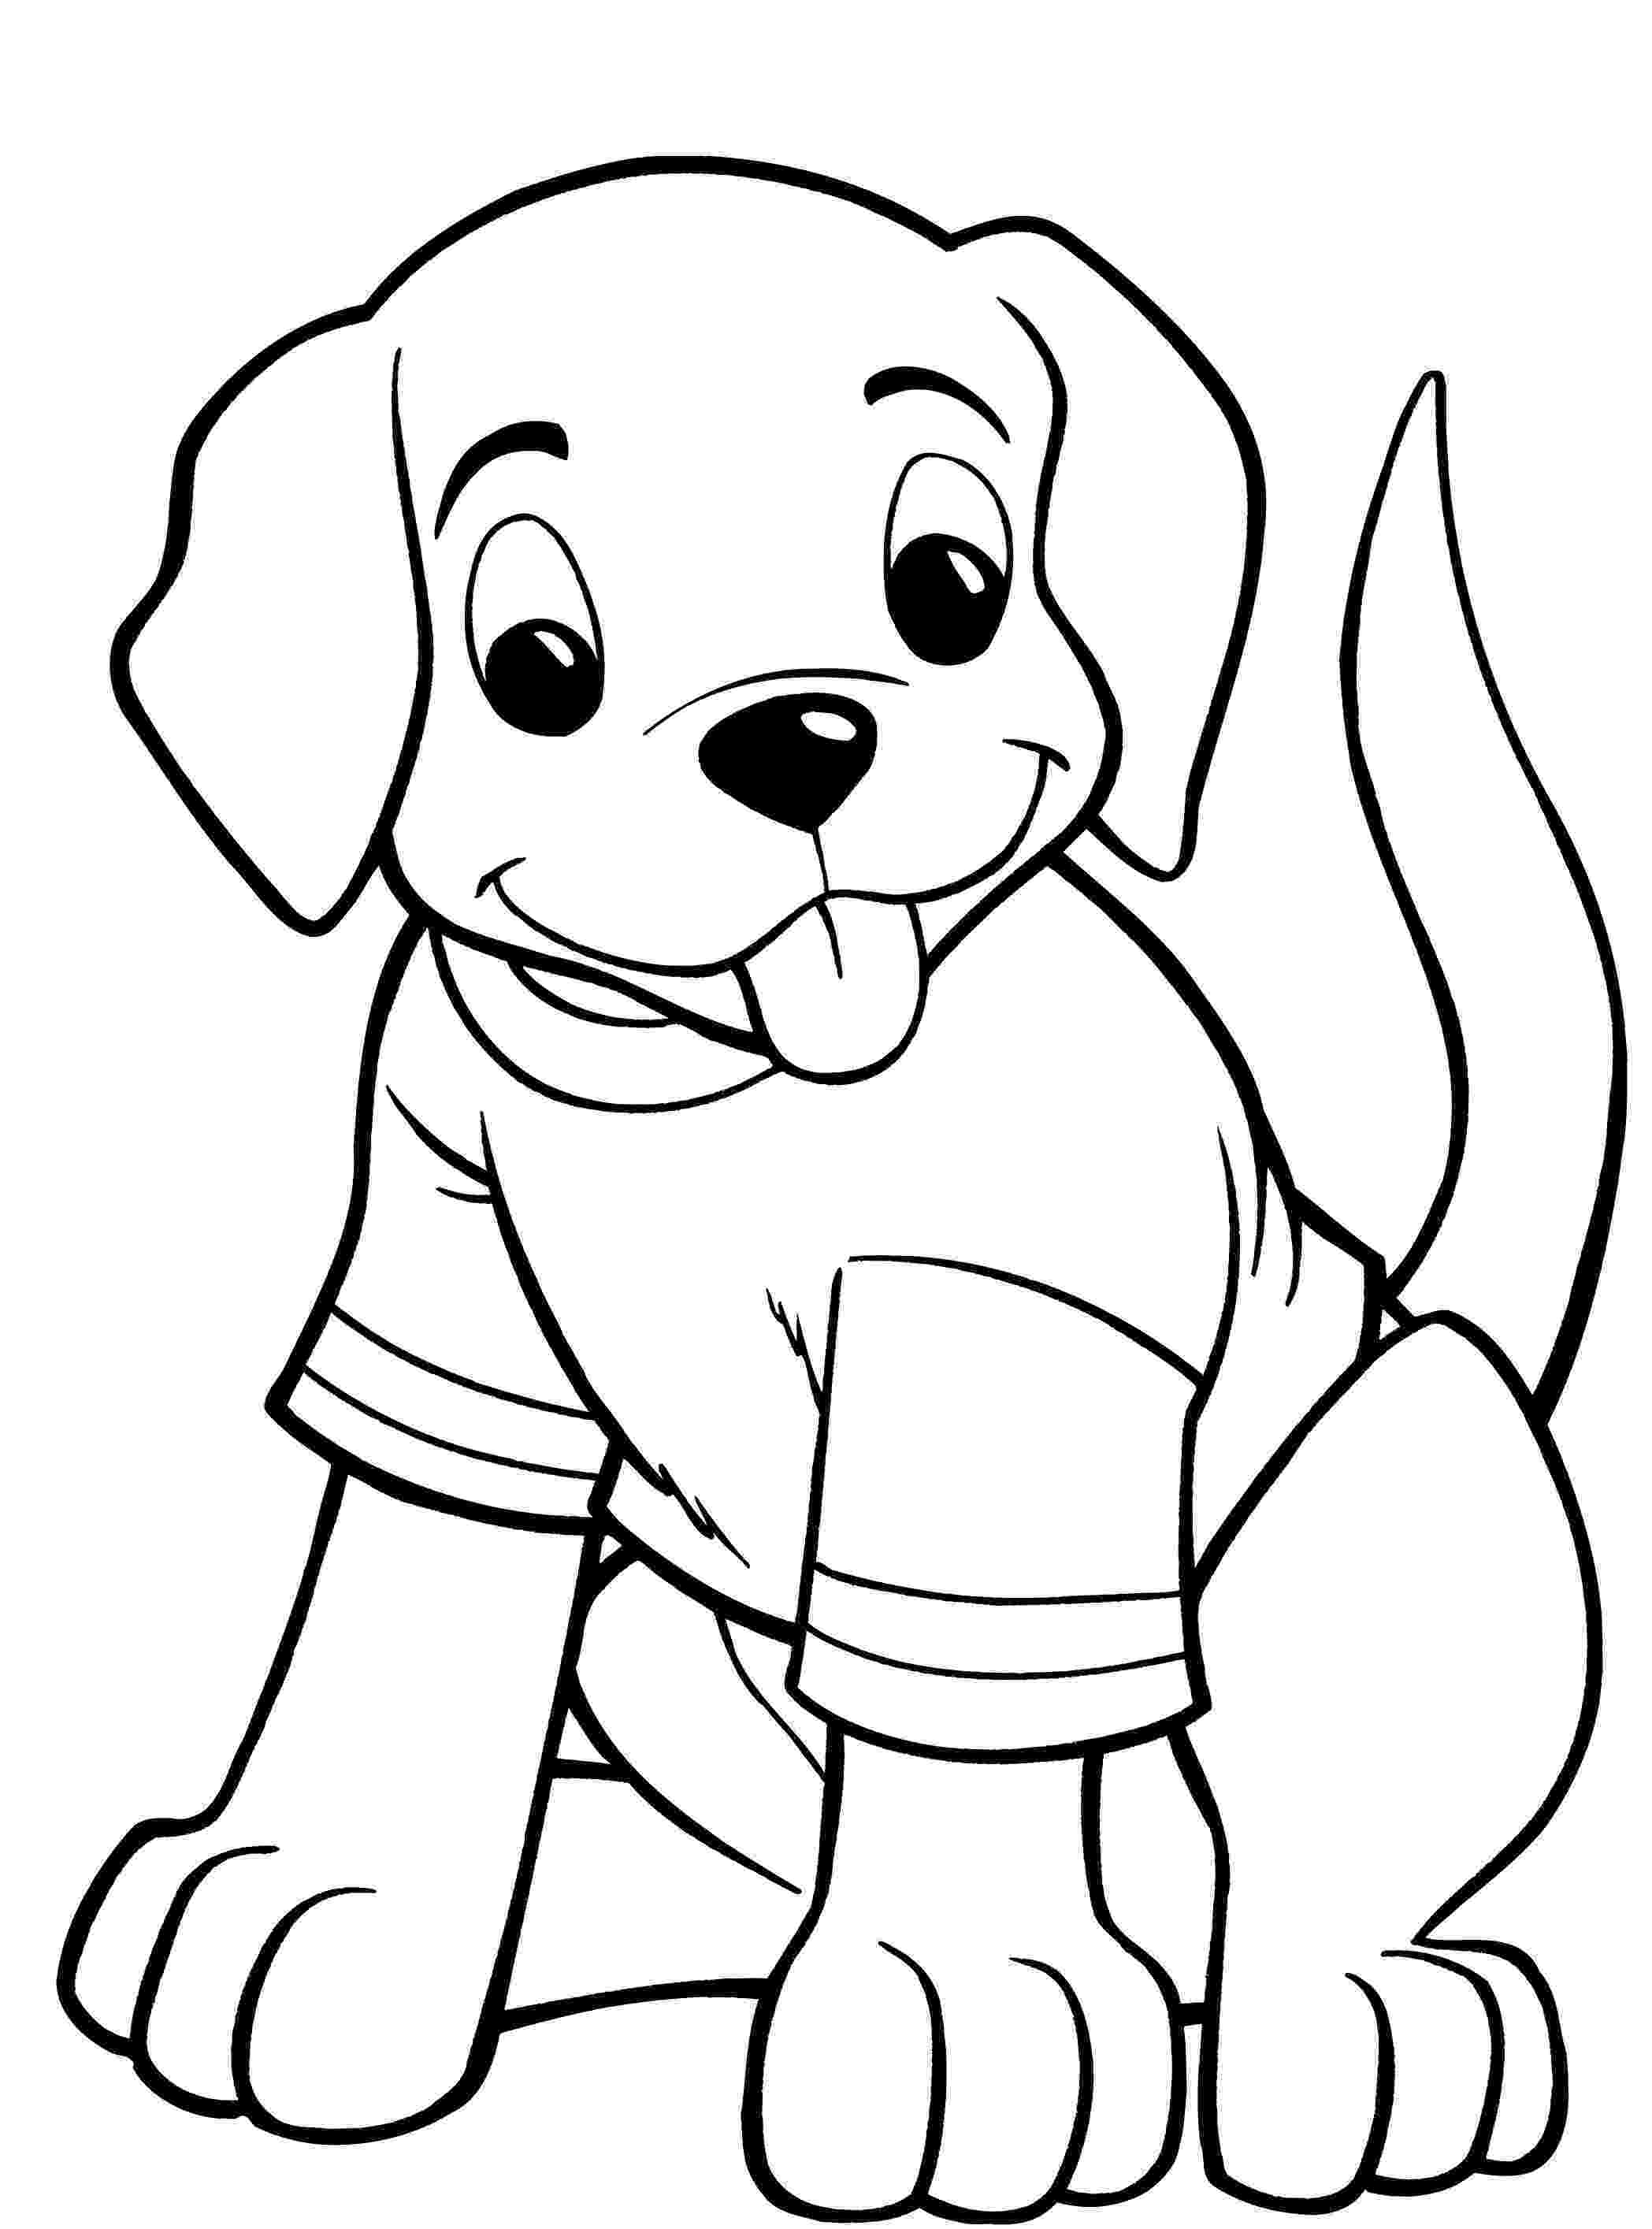 free dog coloring pages printable dog coloring pages for kids cool2bkids coloring pages free dog